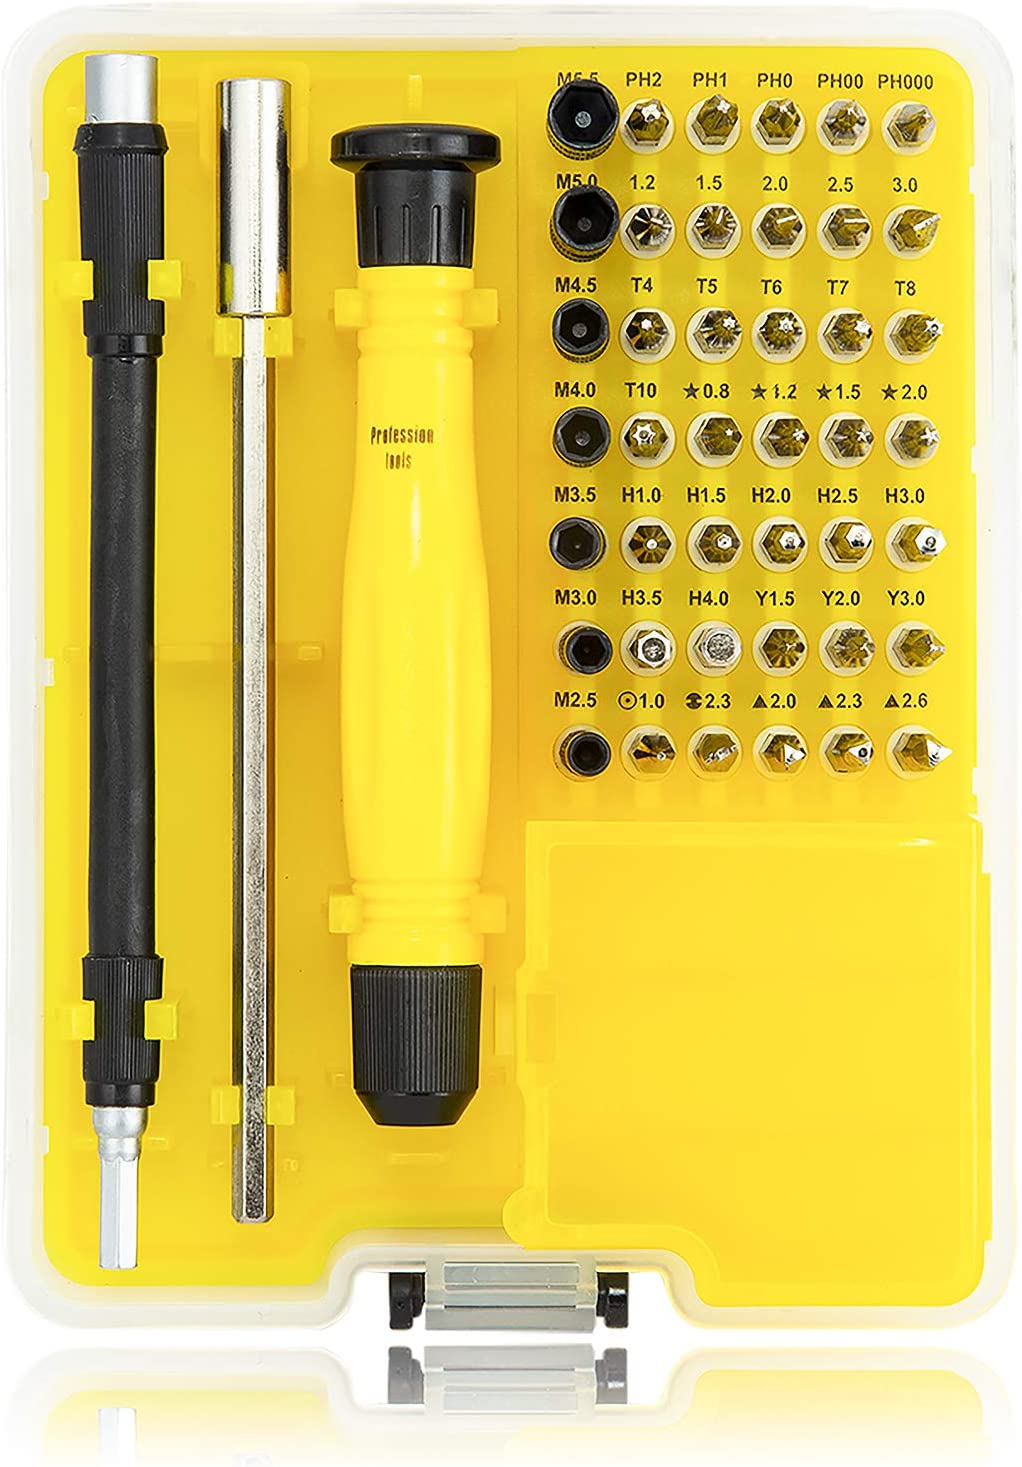 46 in 1 Precision Screwdriver Set Rdeer Magnetic Driver Kit With Sucker Crowbar Triangle Plectrums Component Box Extension Bar And Flexible Shaft For Mobile Phone//Smartphone//Game Console//Tablet//PC